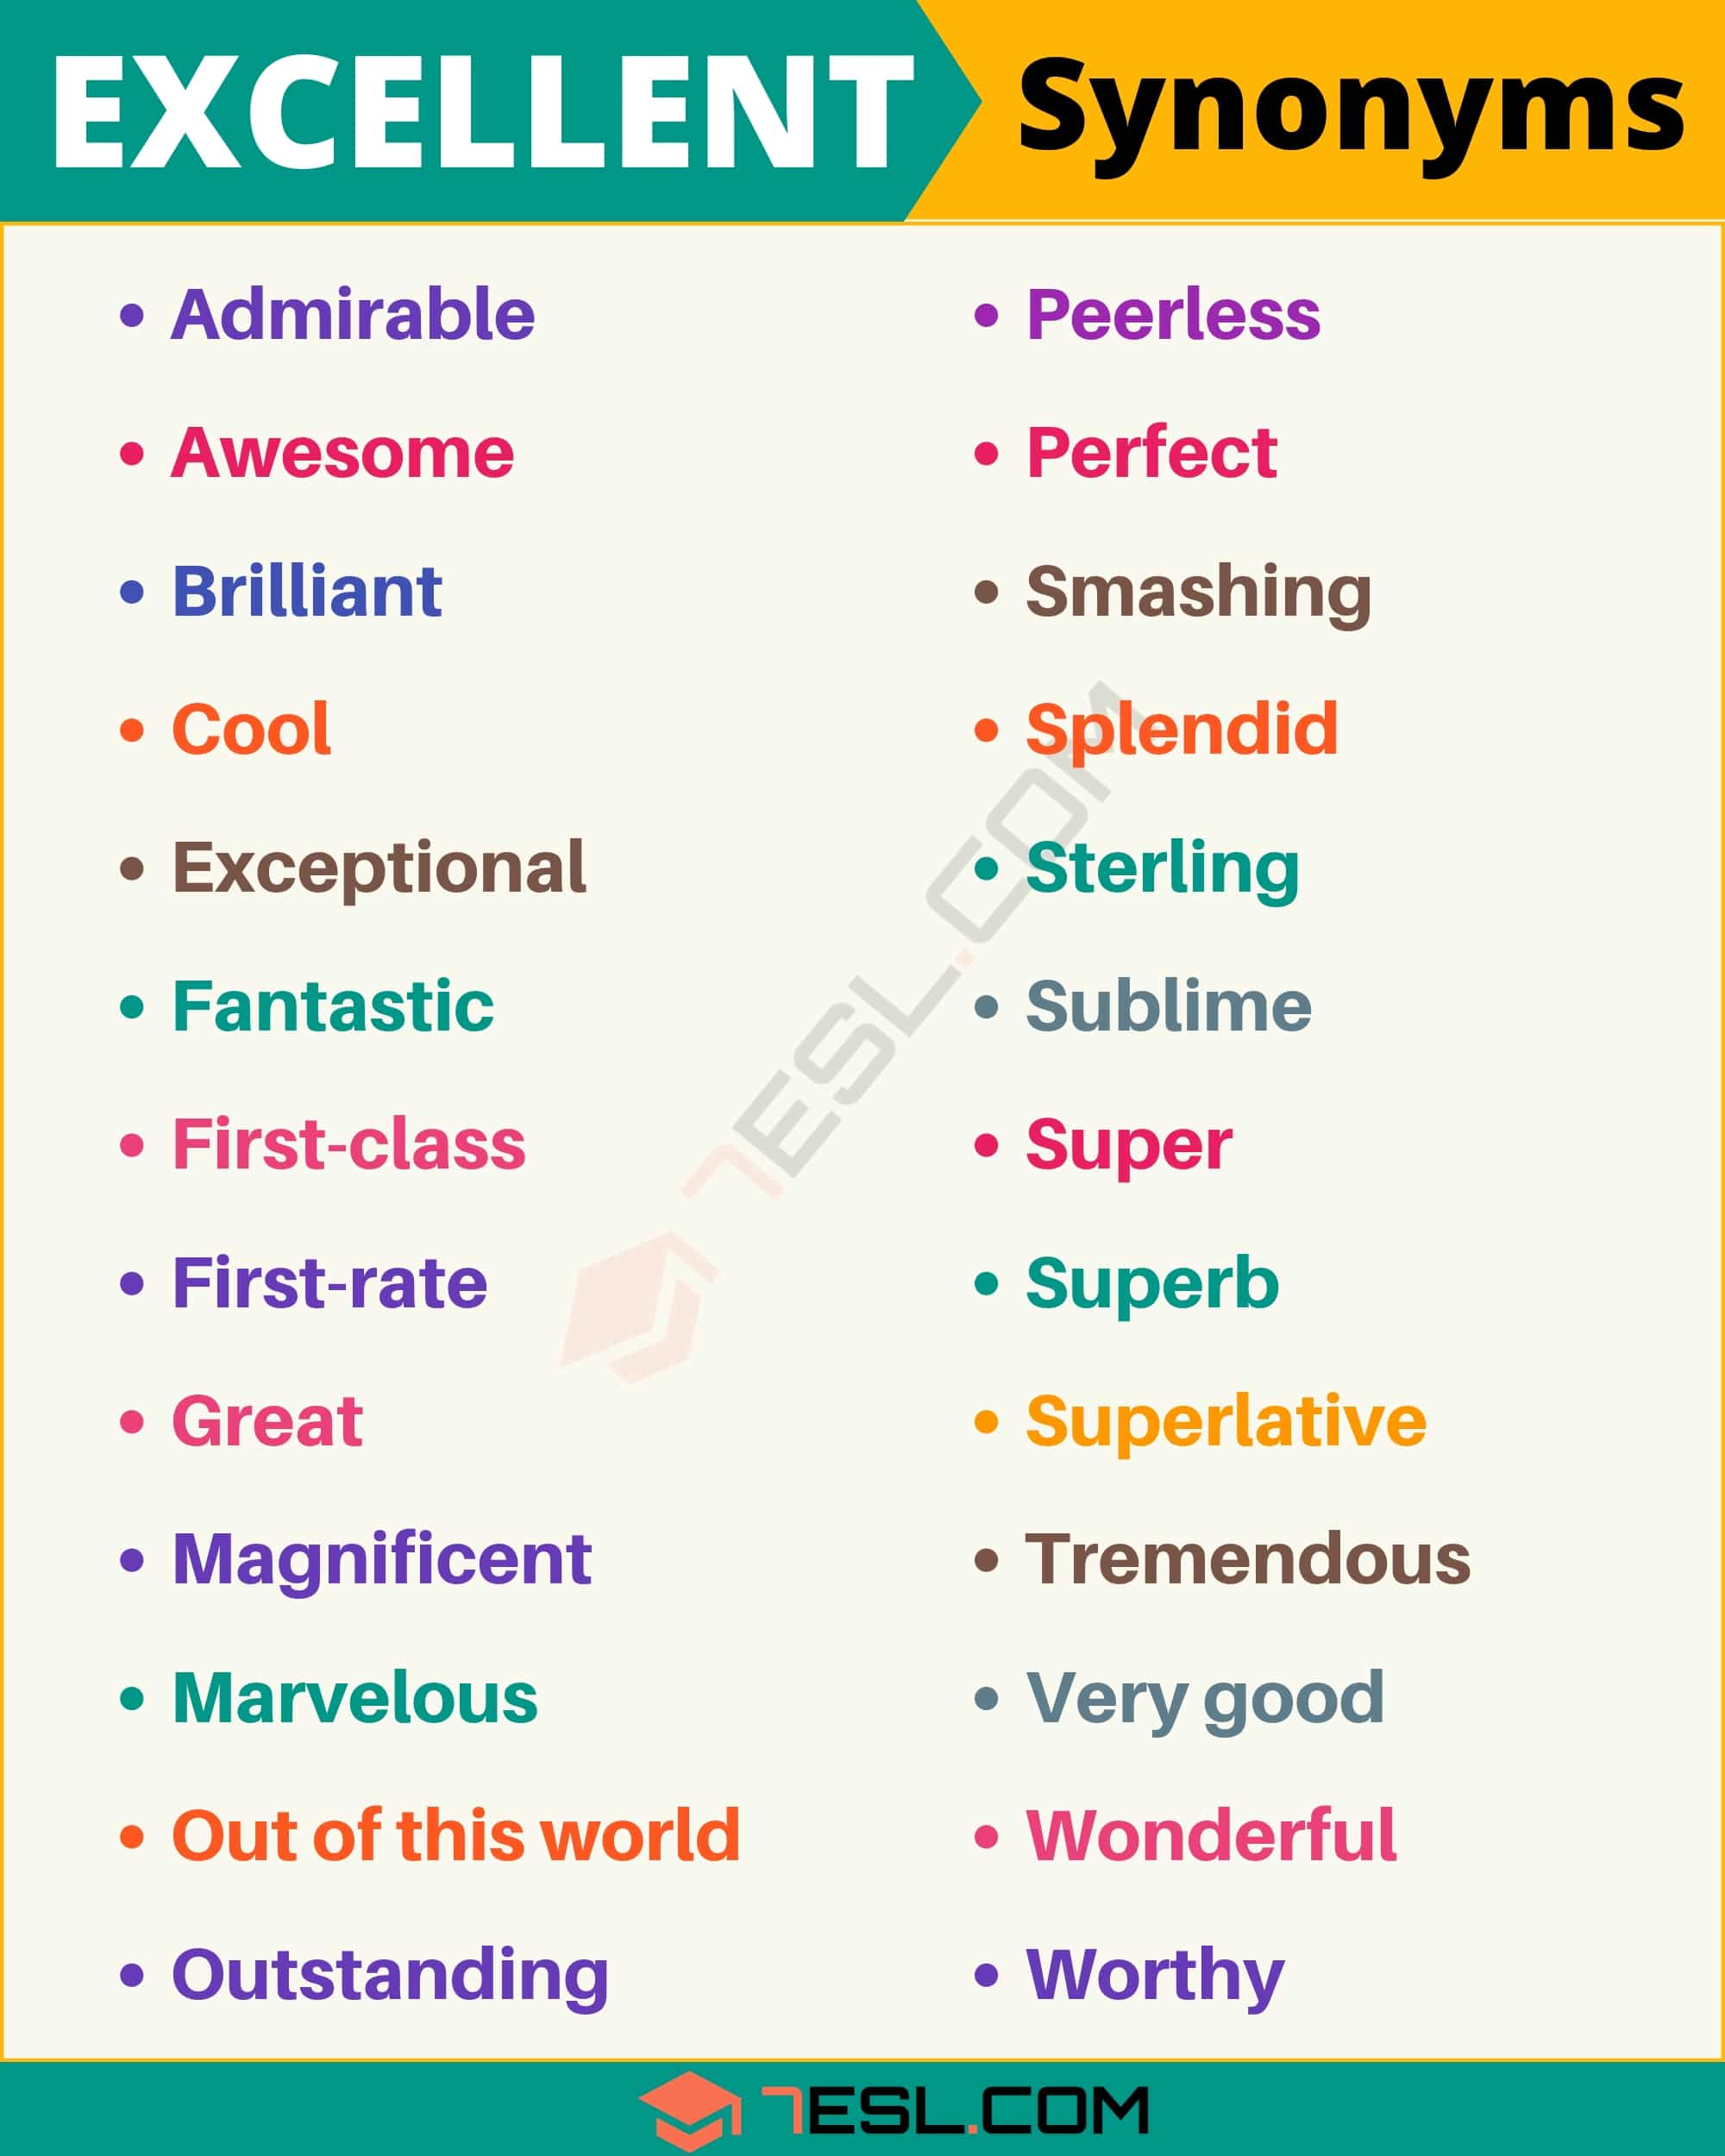 EXCELLENT Synonym: List of 27 Synonyms for Excellent in English